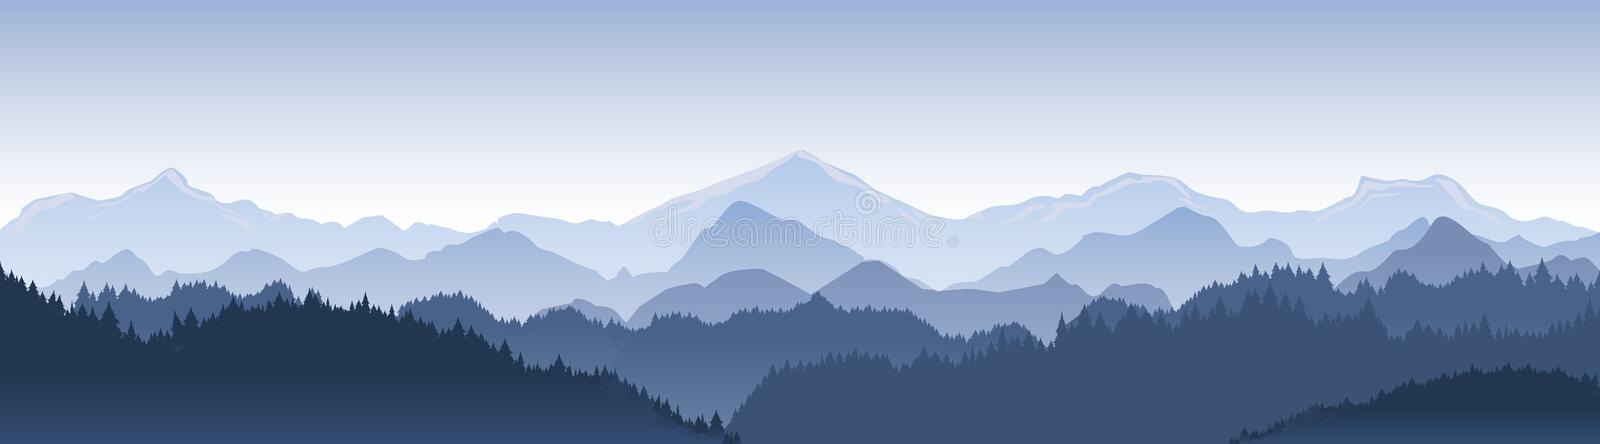 Vector illustration of beautiful dark blue mountain landscape with fog and forest. sunrise and sunset in mountains. royalty free illustration